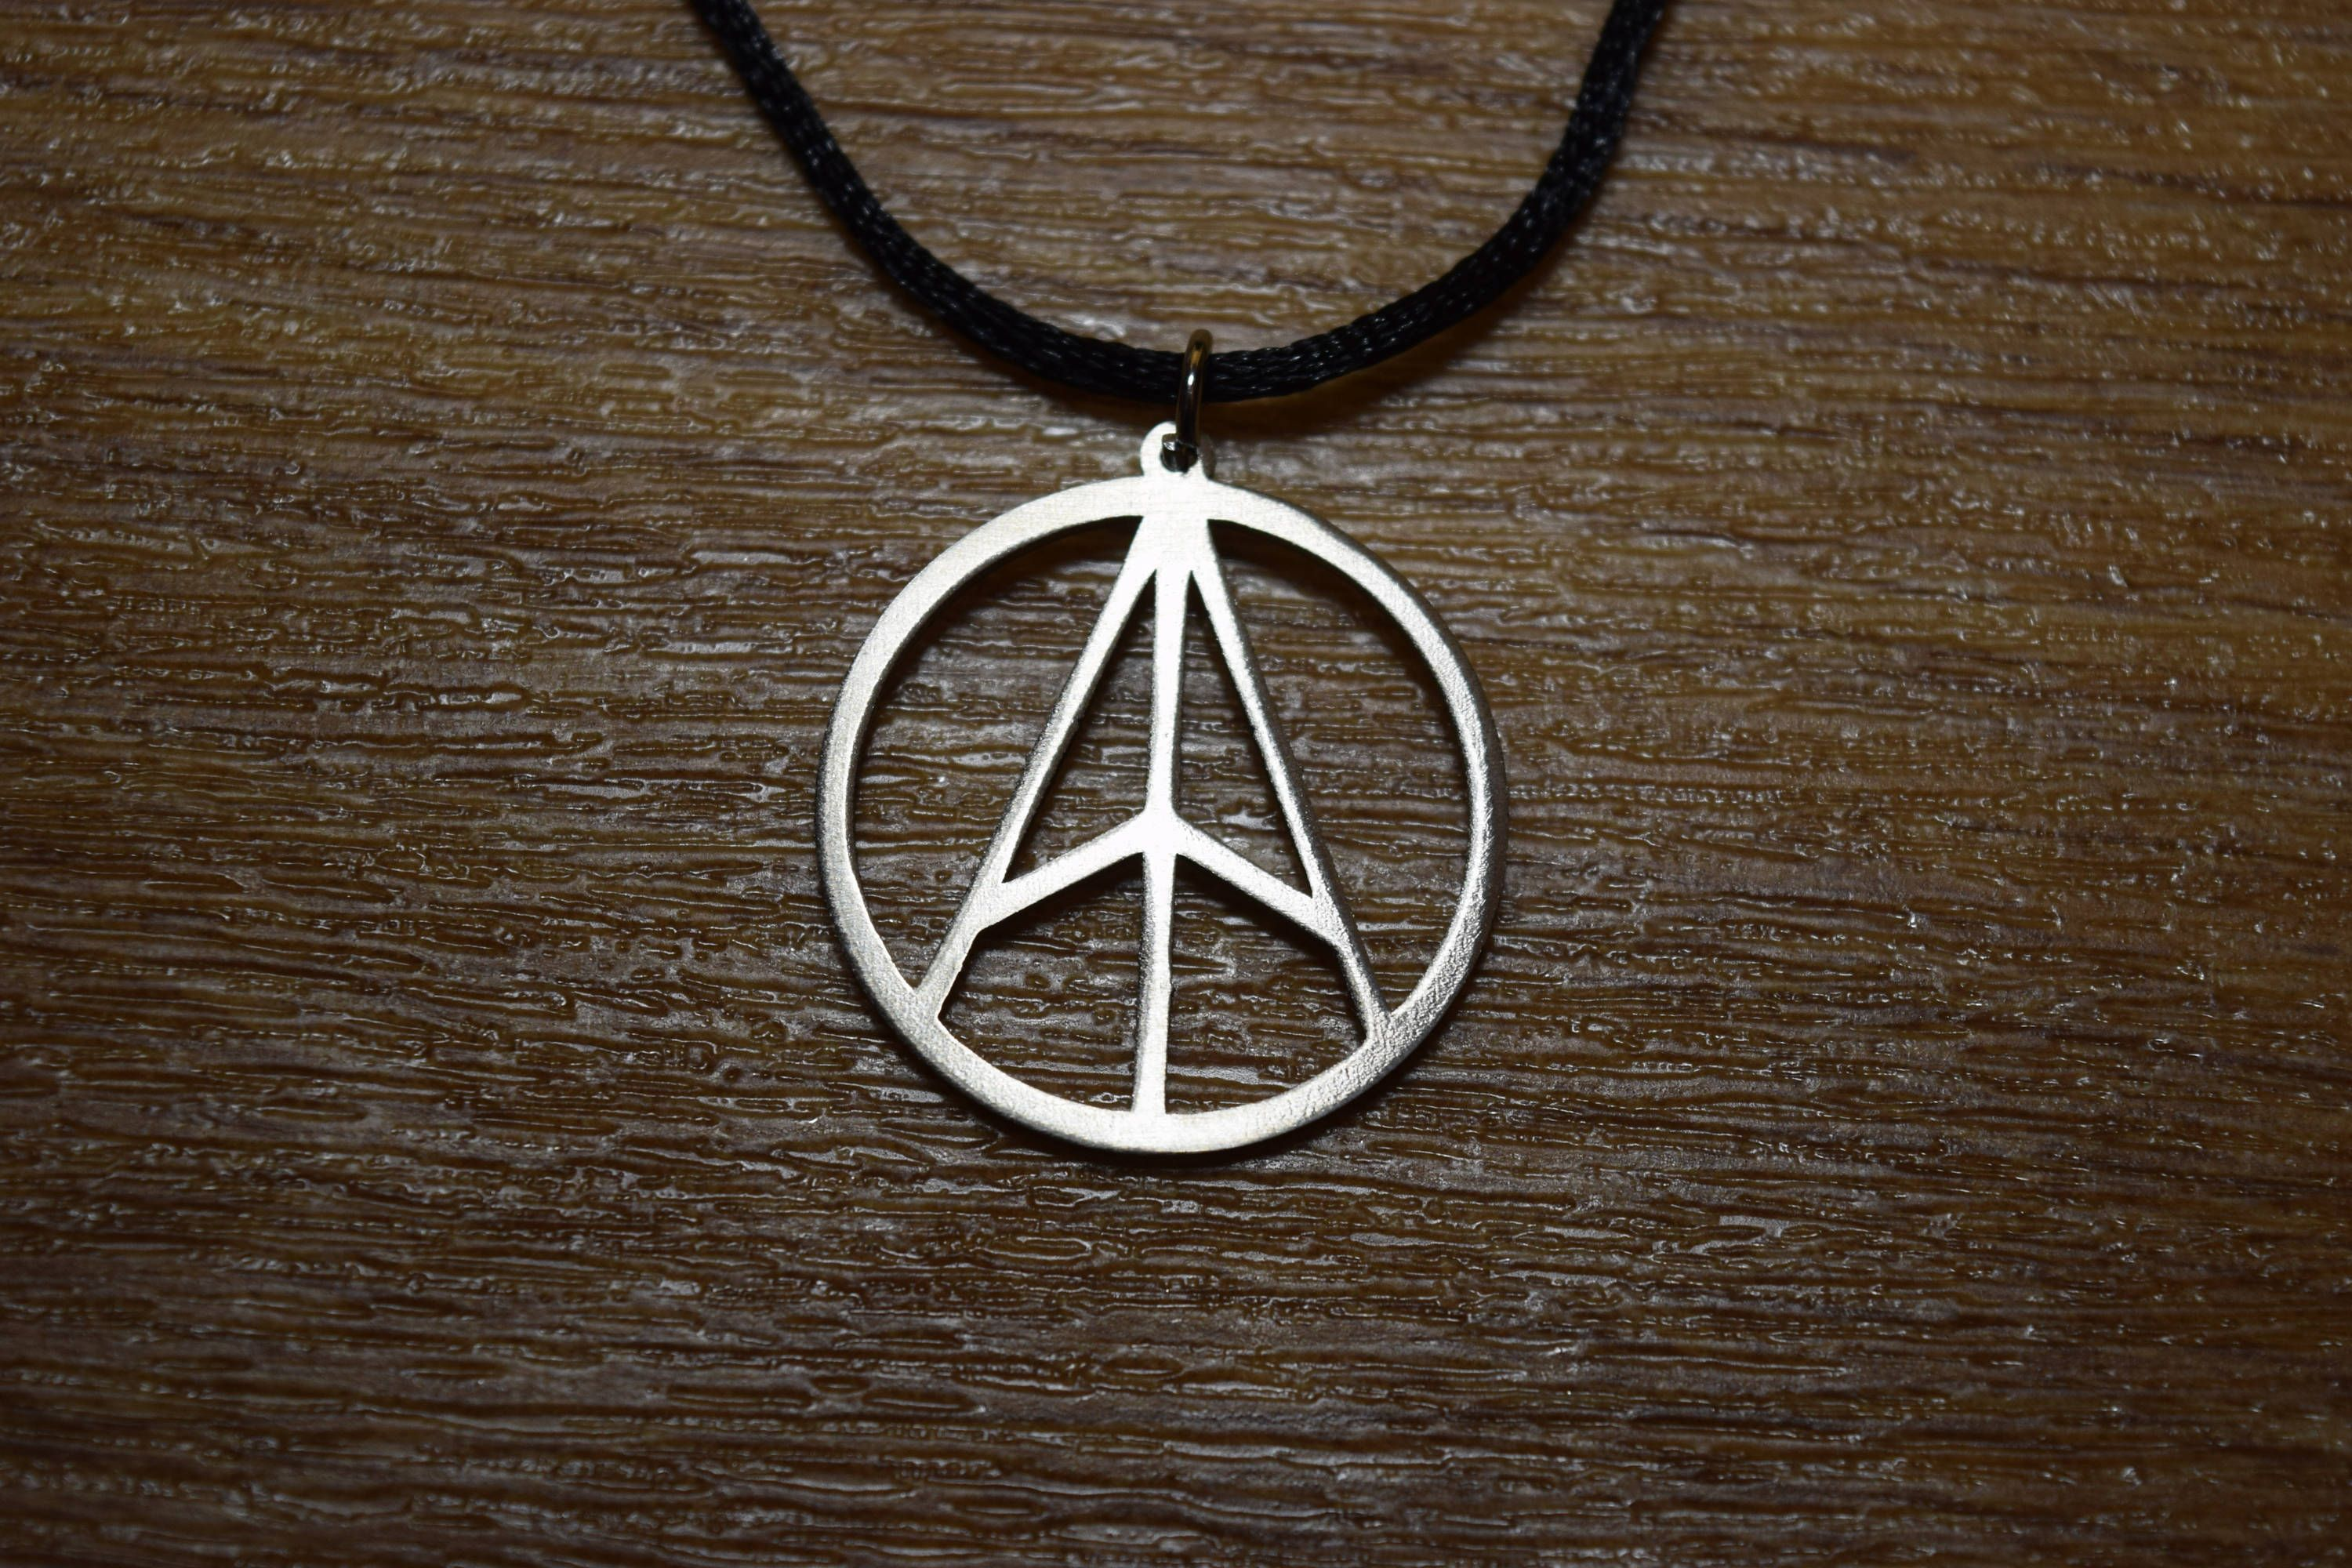 Anarcho pacifism necklace anarcho anarchy cross logo necklace anarcho pacifism necklace anarcho anarchy cross logo necklace pendant symbol talisman choker sharm pin vegan go buycottarizona Gallery